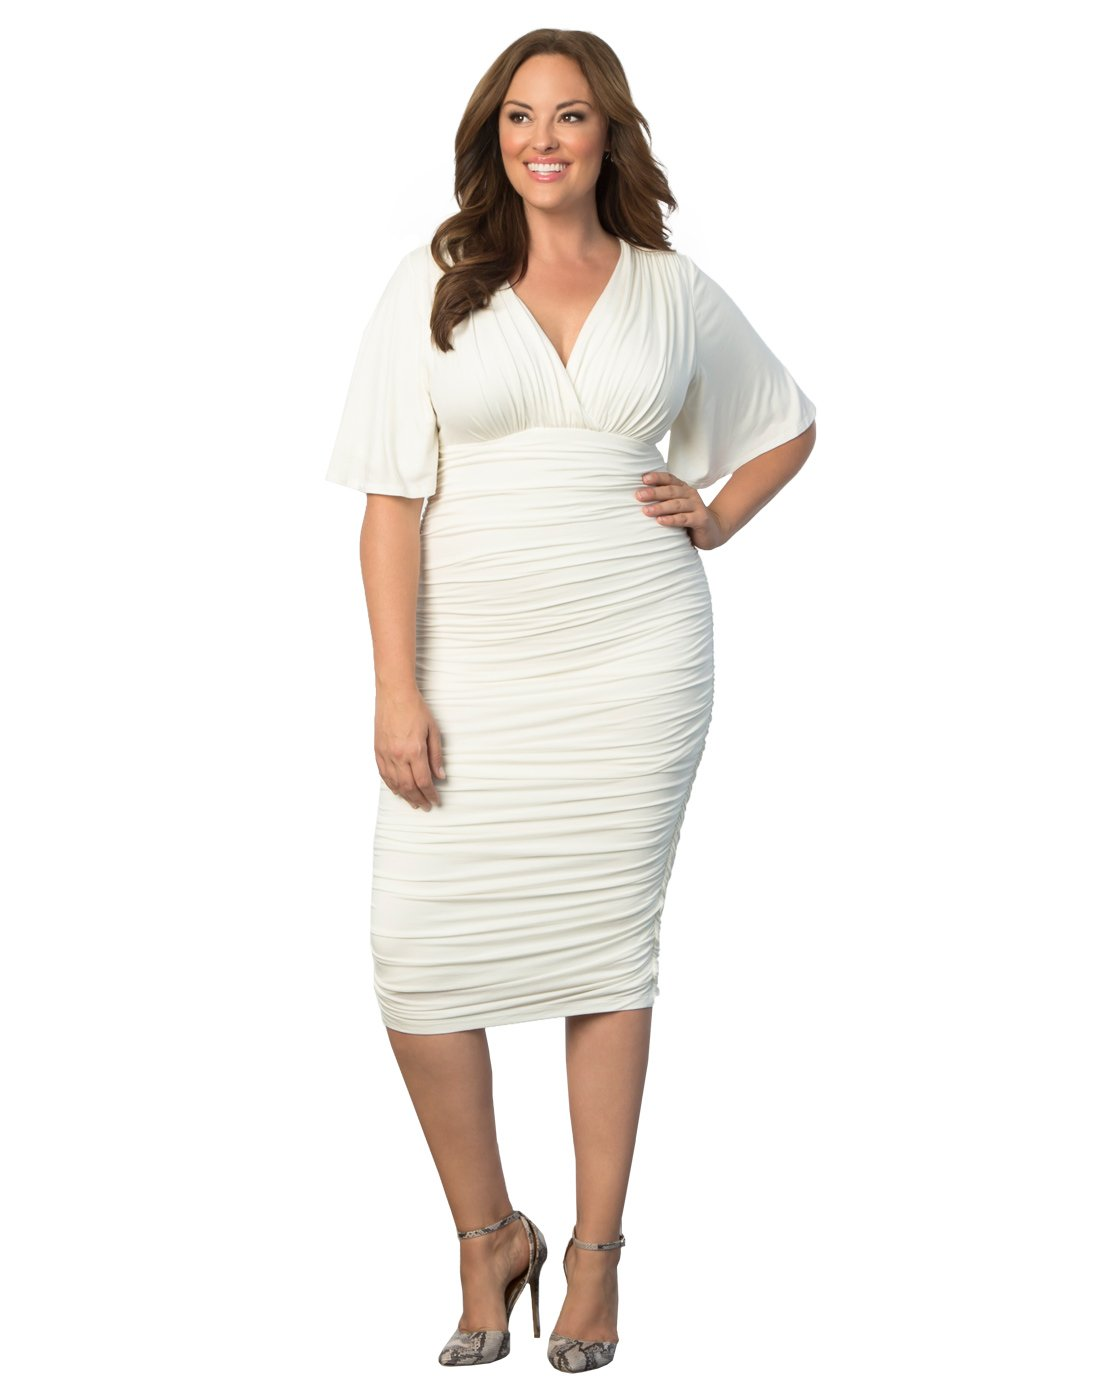 Kiyonna Women's Plus Size Rumor Ruched Dress 2x Ivory by Kiyonna Clothing